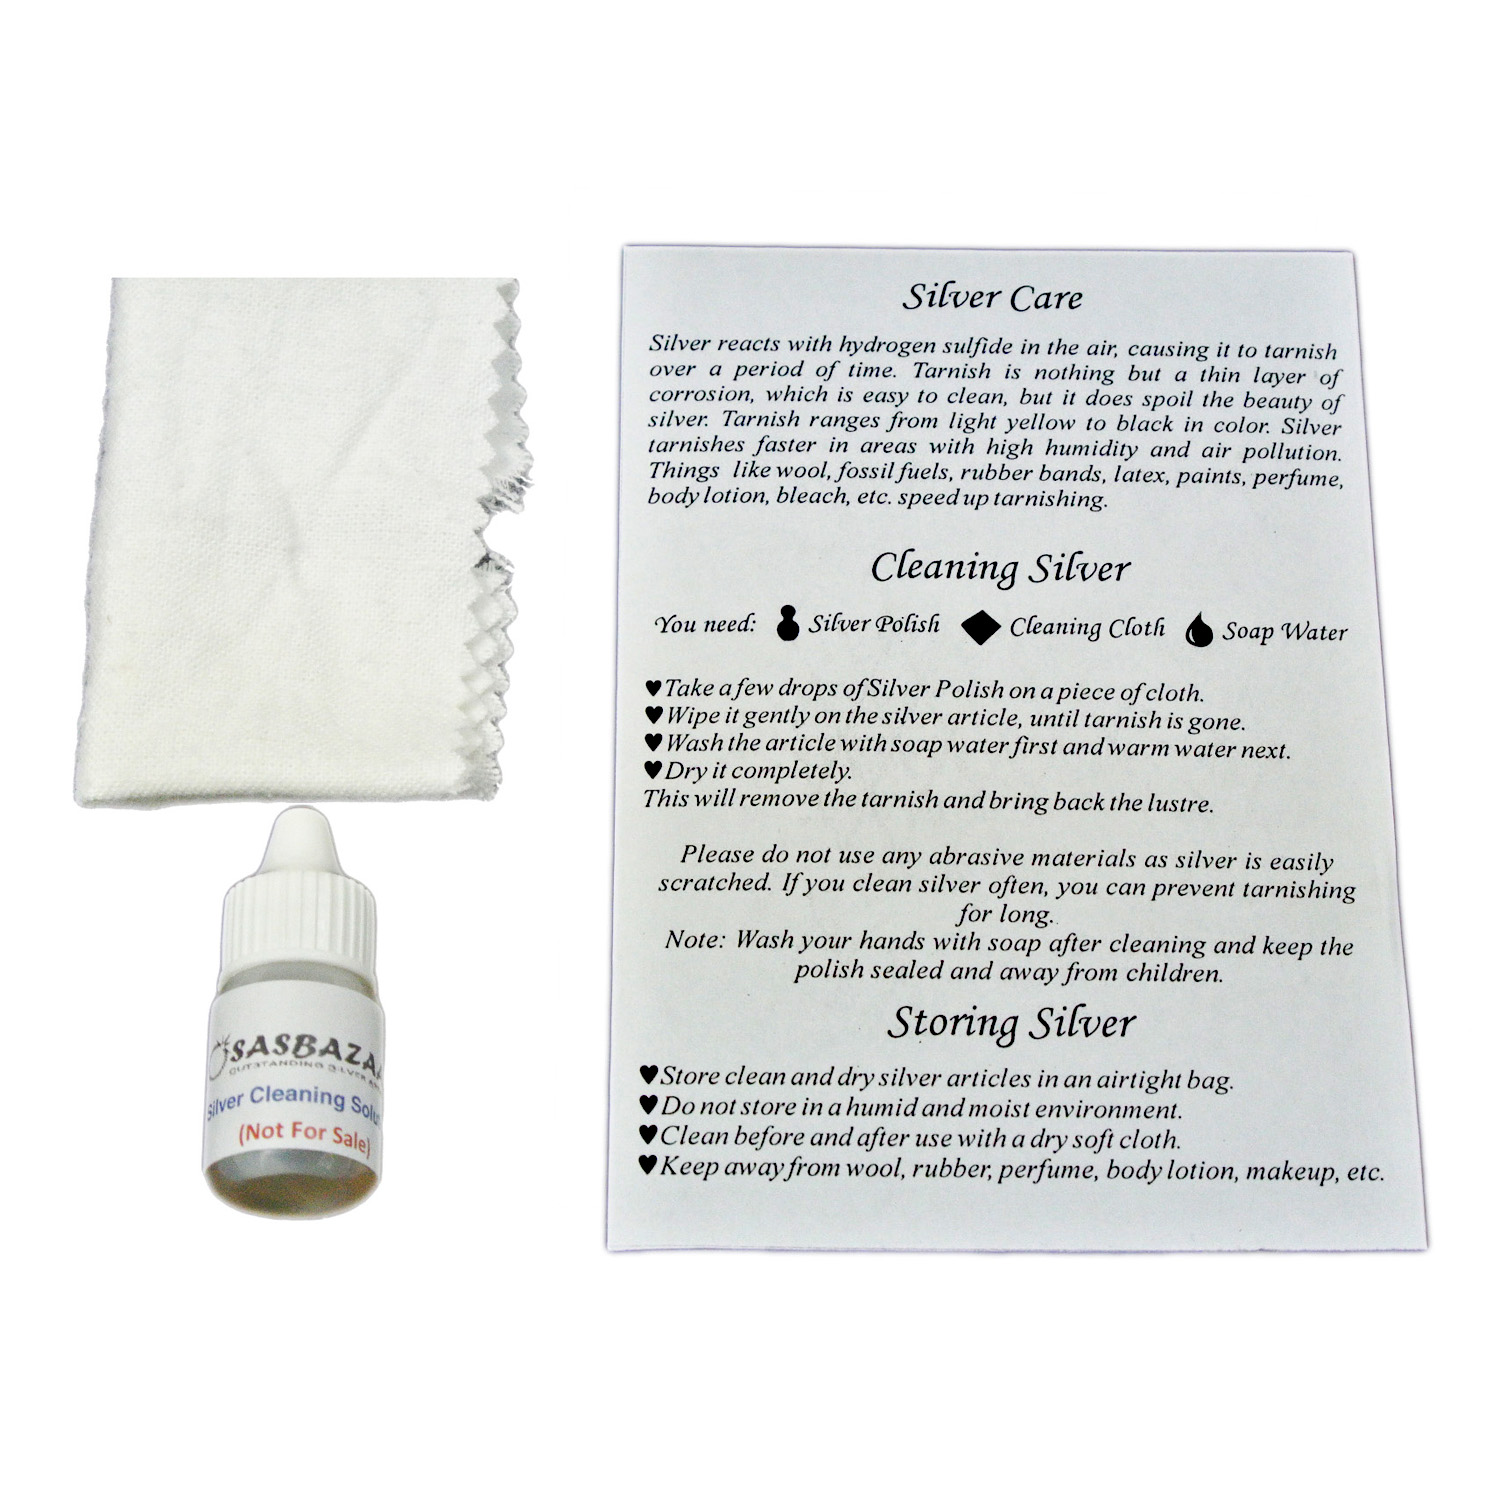 Osasbazaar Free Silver Care Kit